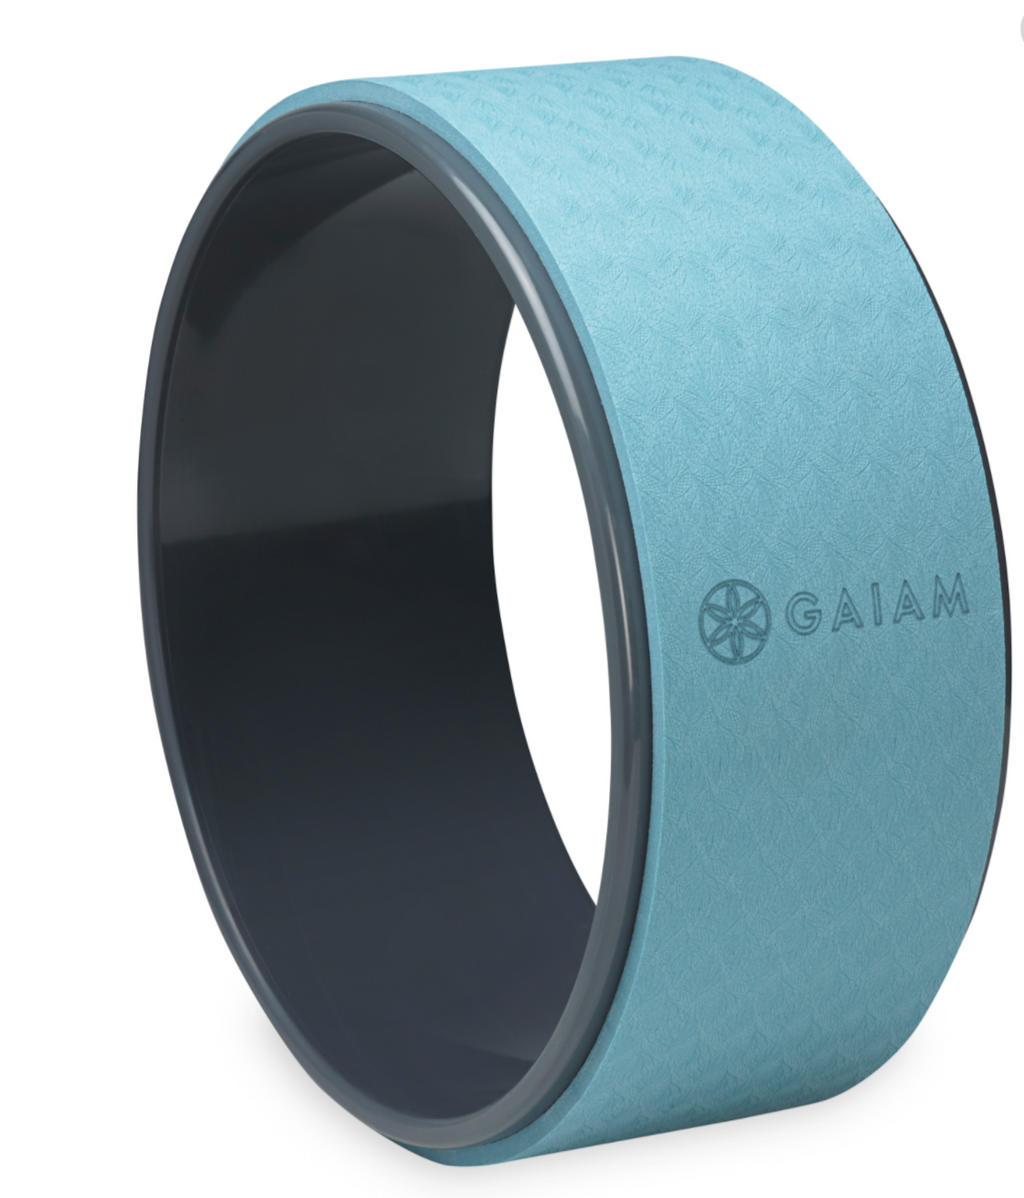 Gaiam - Yoga Wheel Granite Riverside